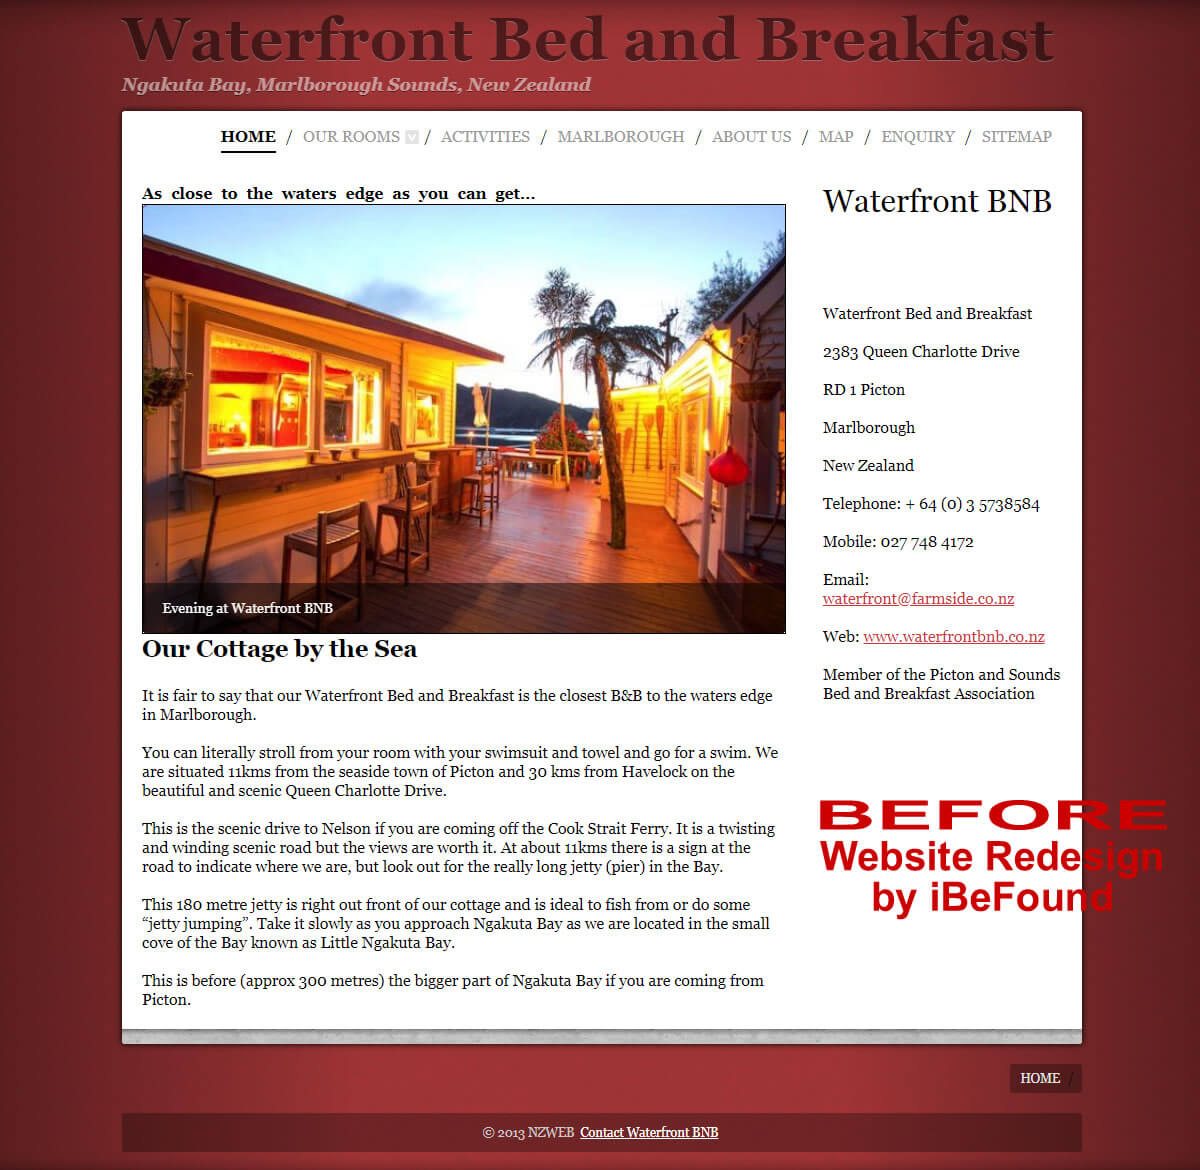 Homepage Of Waterfront Bed And Breakfast Before Website Redesign By IBeFound Digital Marketing Division